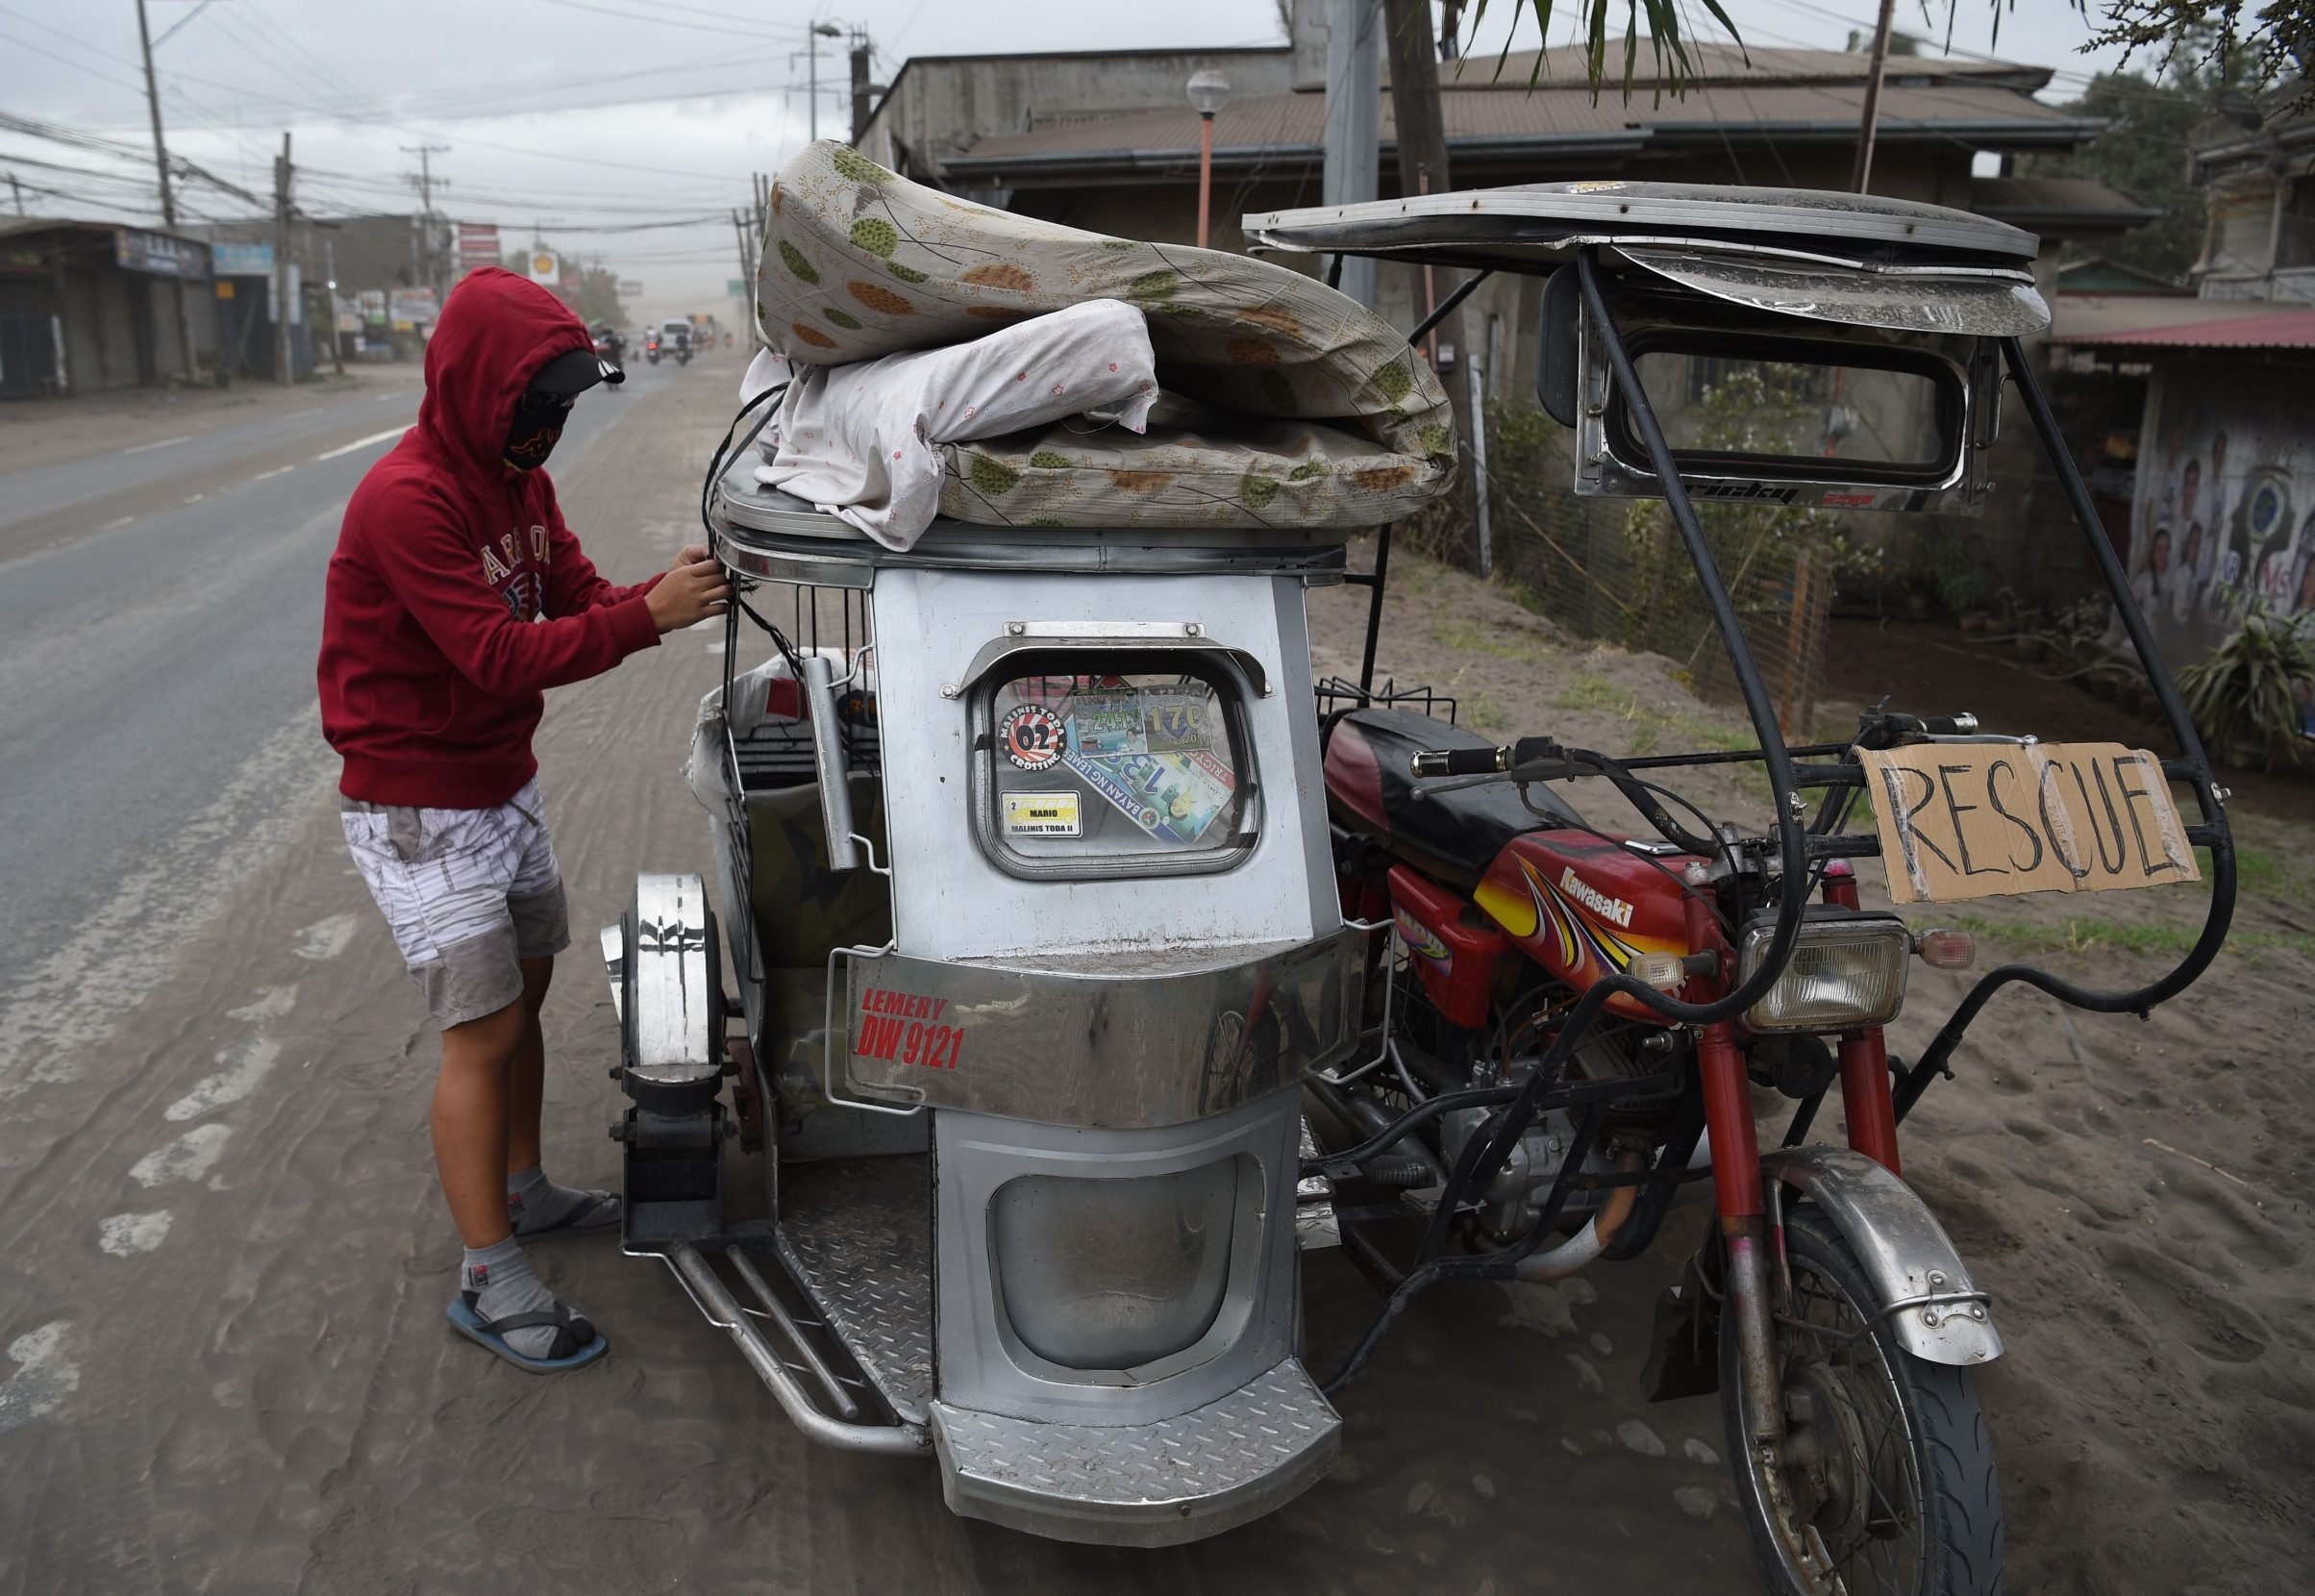 A volcano-affected resident loads his belongings onto a tricycle while evacuating Lemery town, Batangas province south of Manila on January 15, 2020. - Philippine authorities were struggling January 15 to keep thousands of evacuees from returning to homes in areas threatened by a feared massive eruption of Taal volcano. (Photo by Ted ALJIBE / AFP)